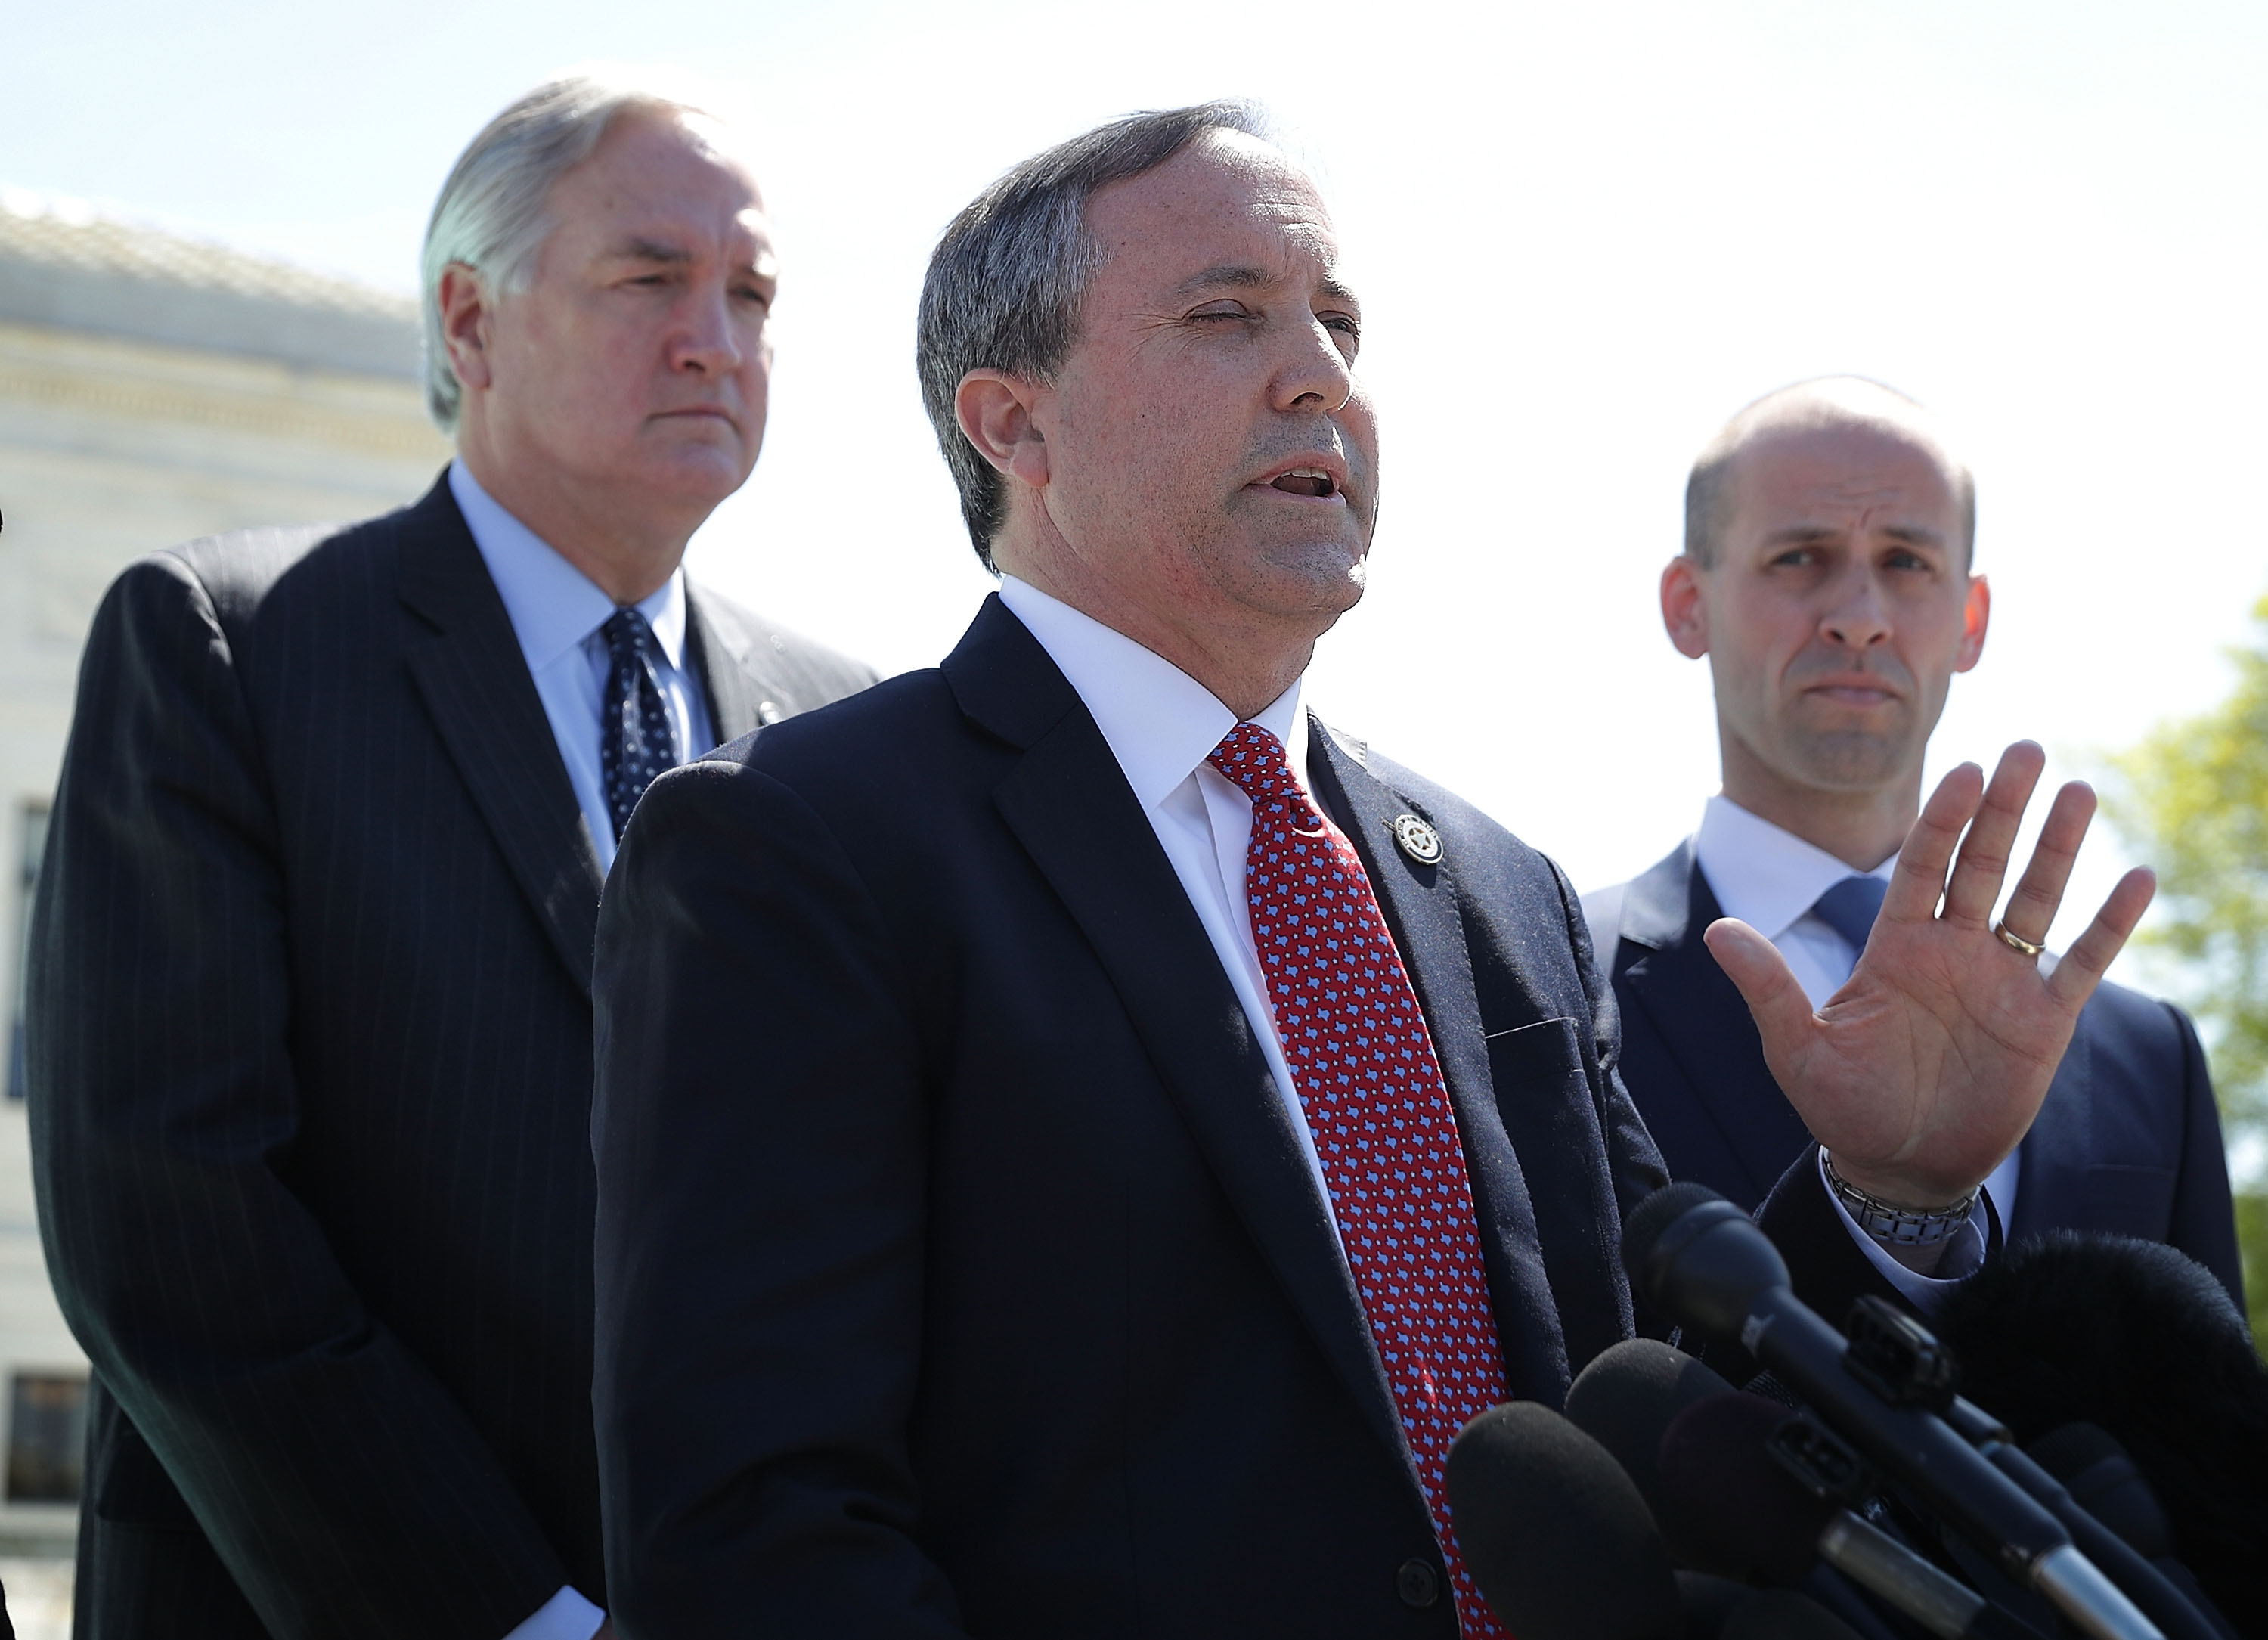 Texas Attorney General Kenneth Paxton (2nd R) speaks to members of the media as former Texas Solicitor General Scott Keller (R) listens in front of the US Supreme Court April 18, 2016 in Washington, DC